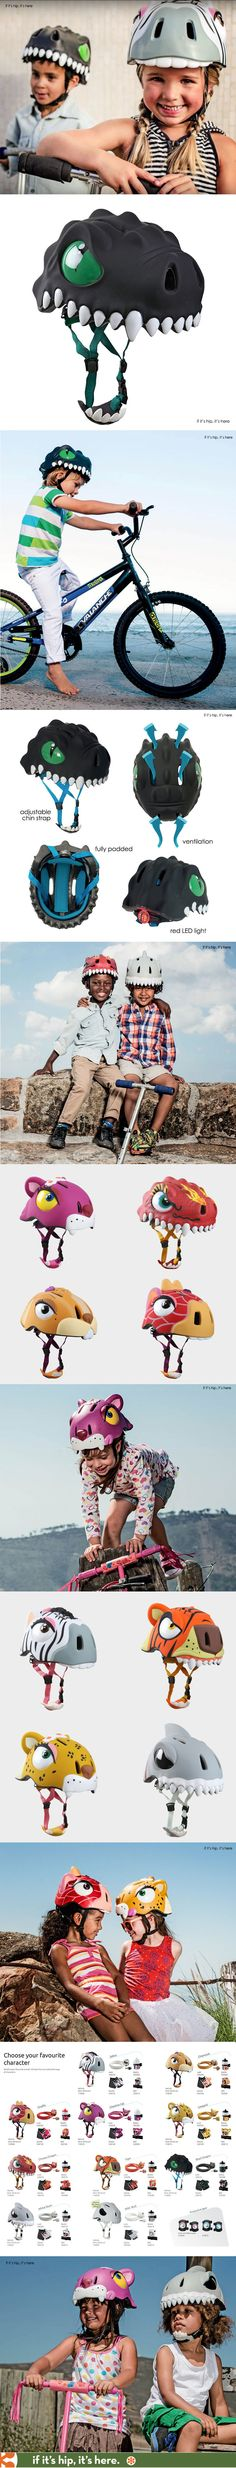 Kids' safety does not get cuter than these awesome bike helmets for boys and girls in the shapes of animals and dragons.